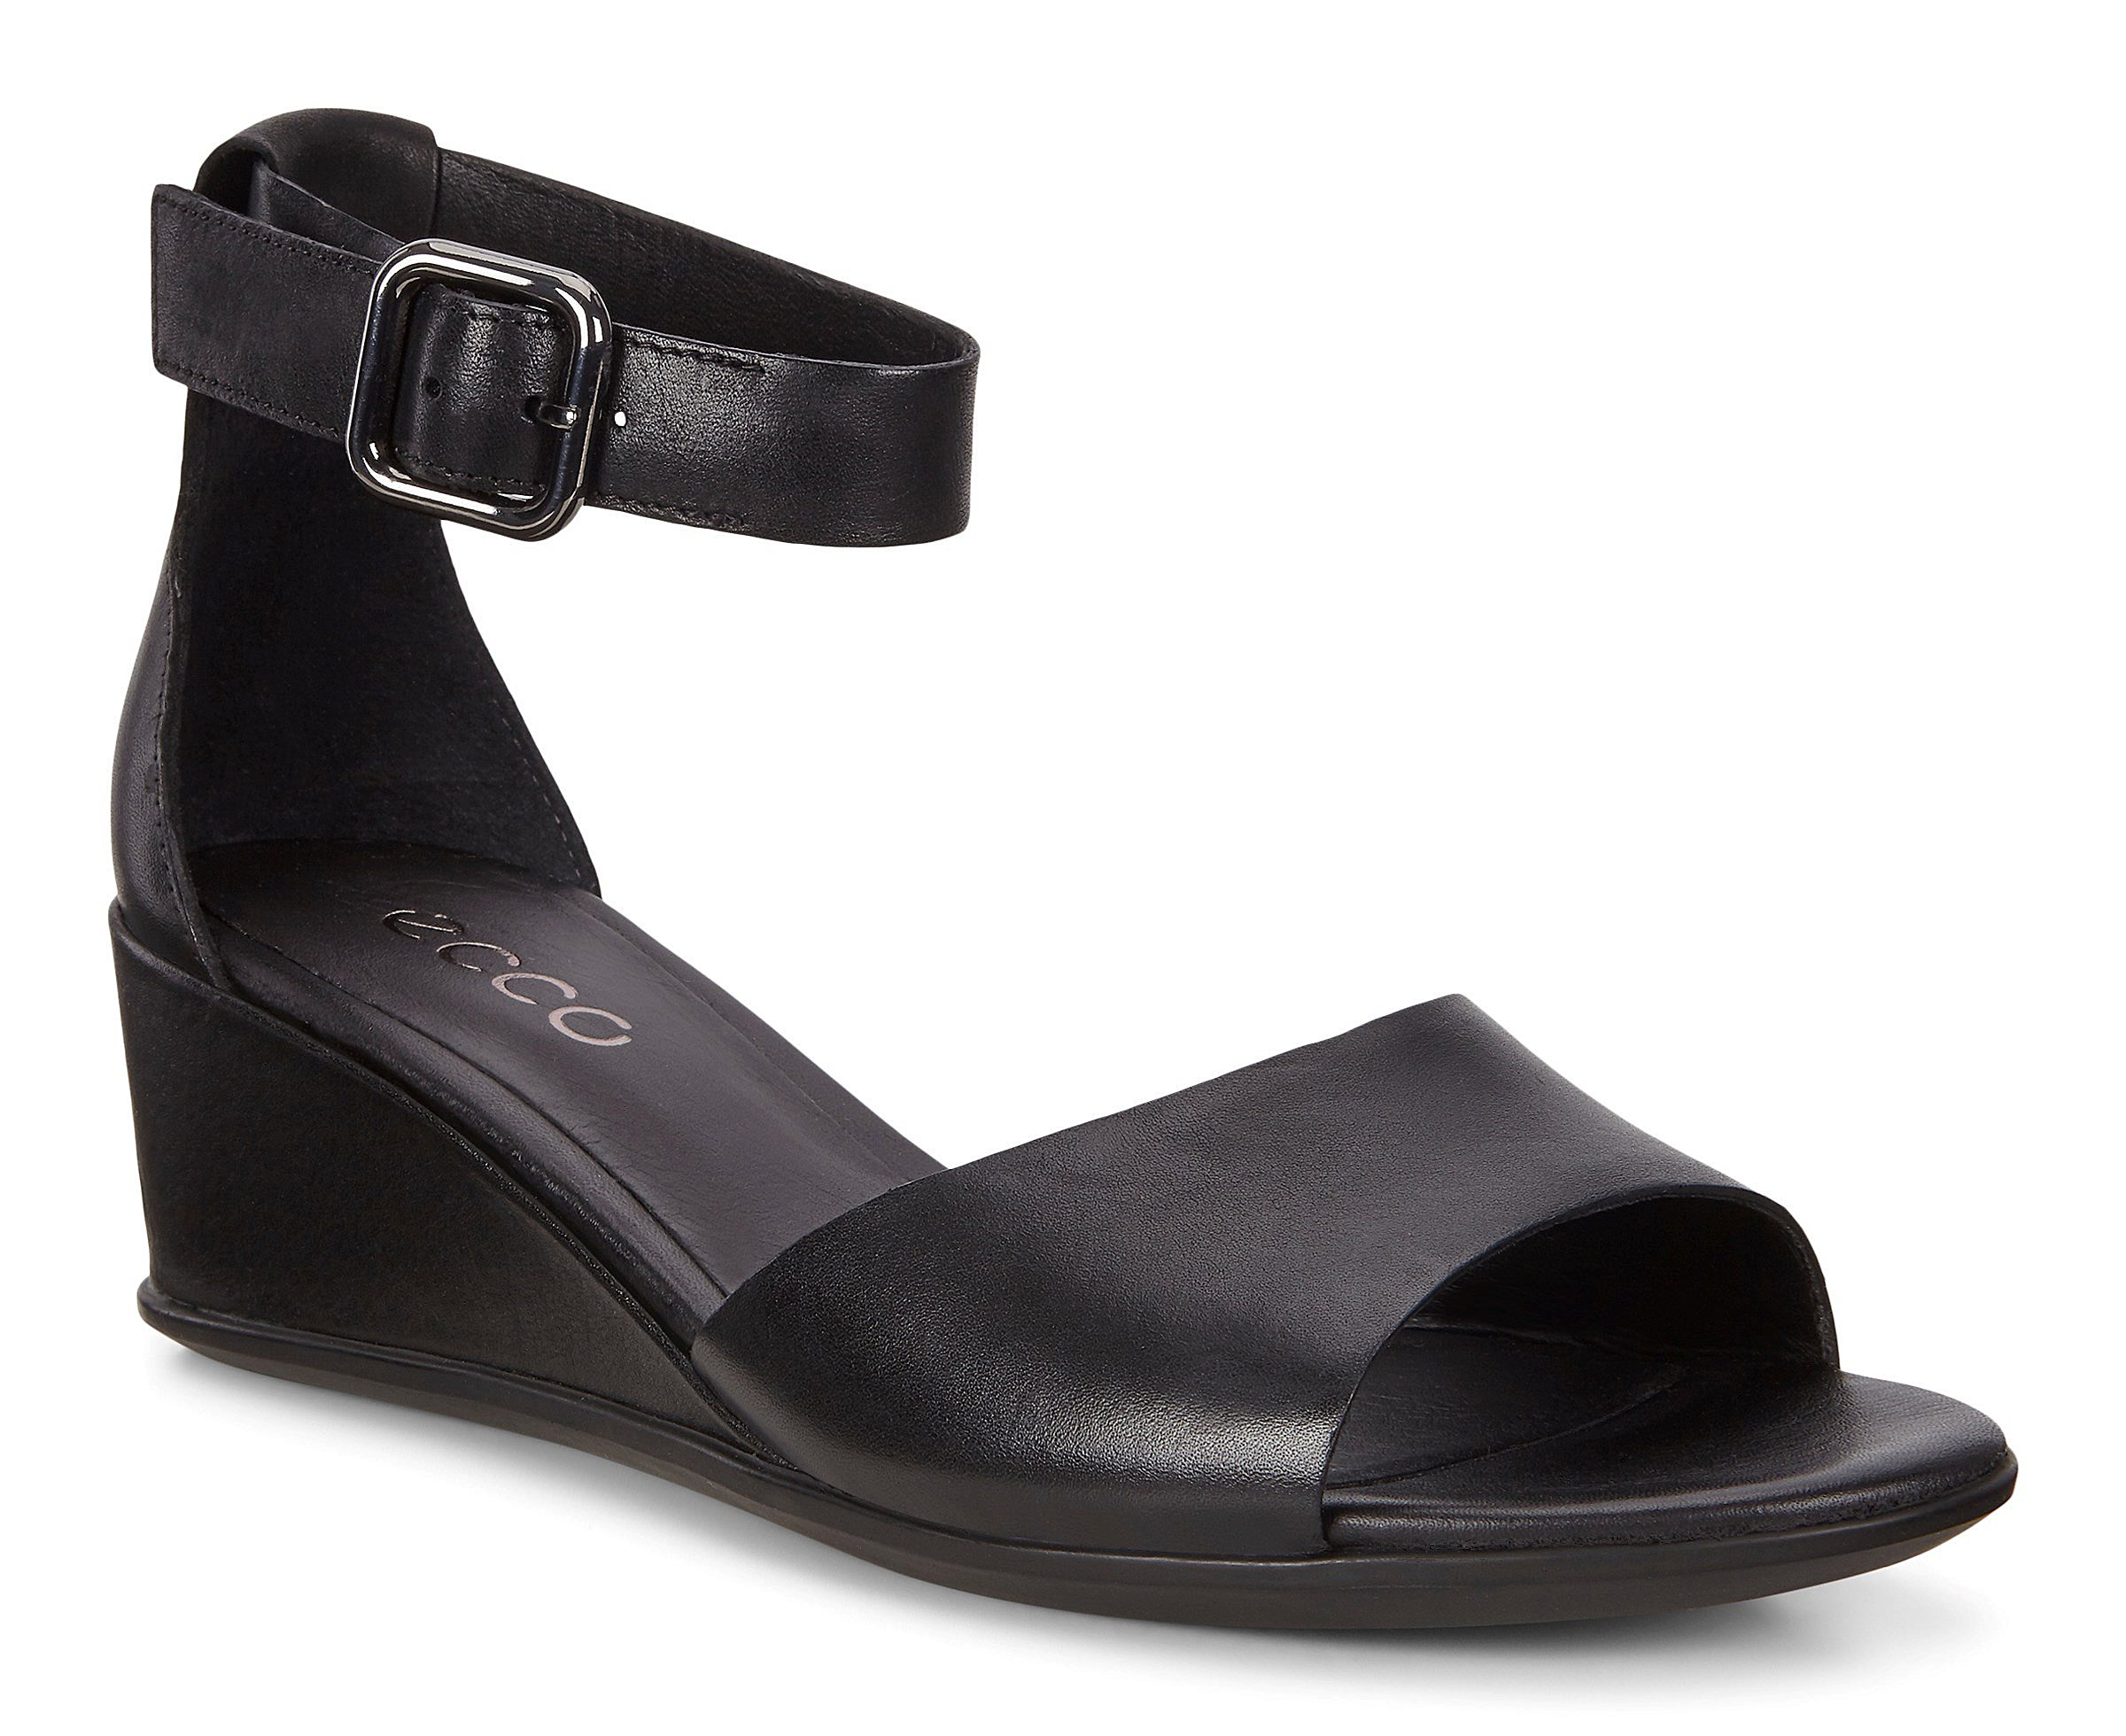 Women's Sandals | Buy from the Official ECCO® Online Store